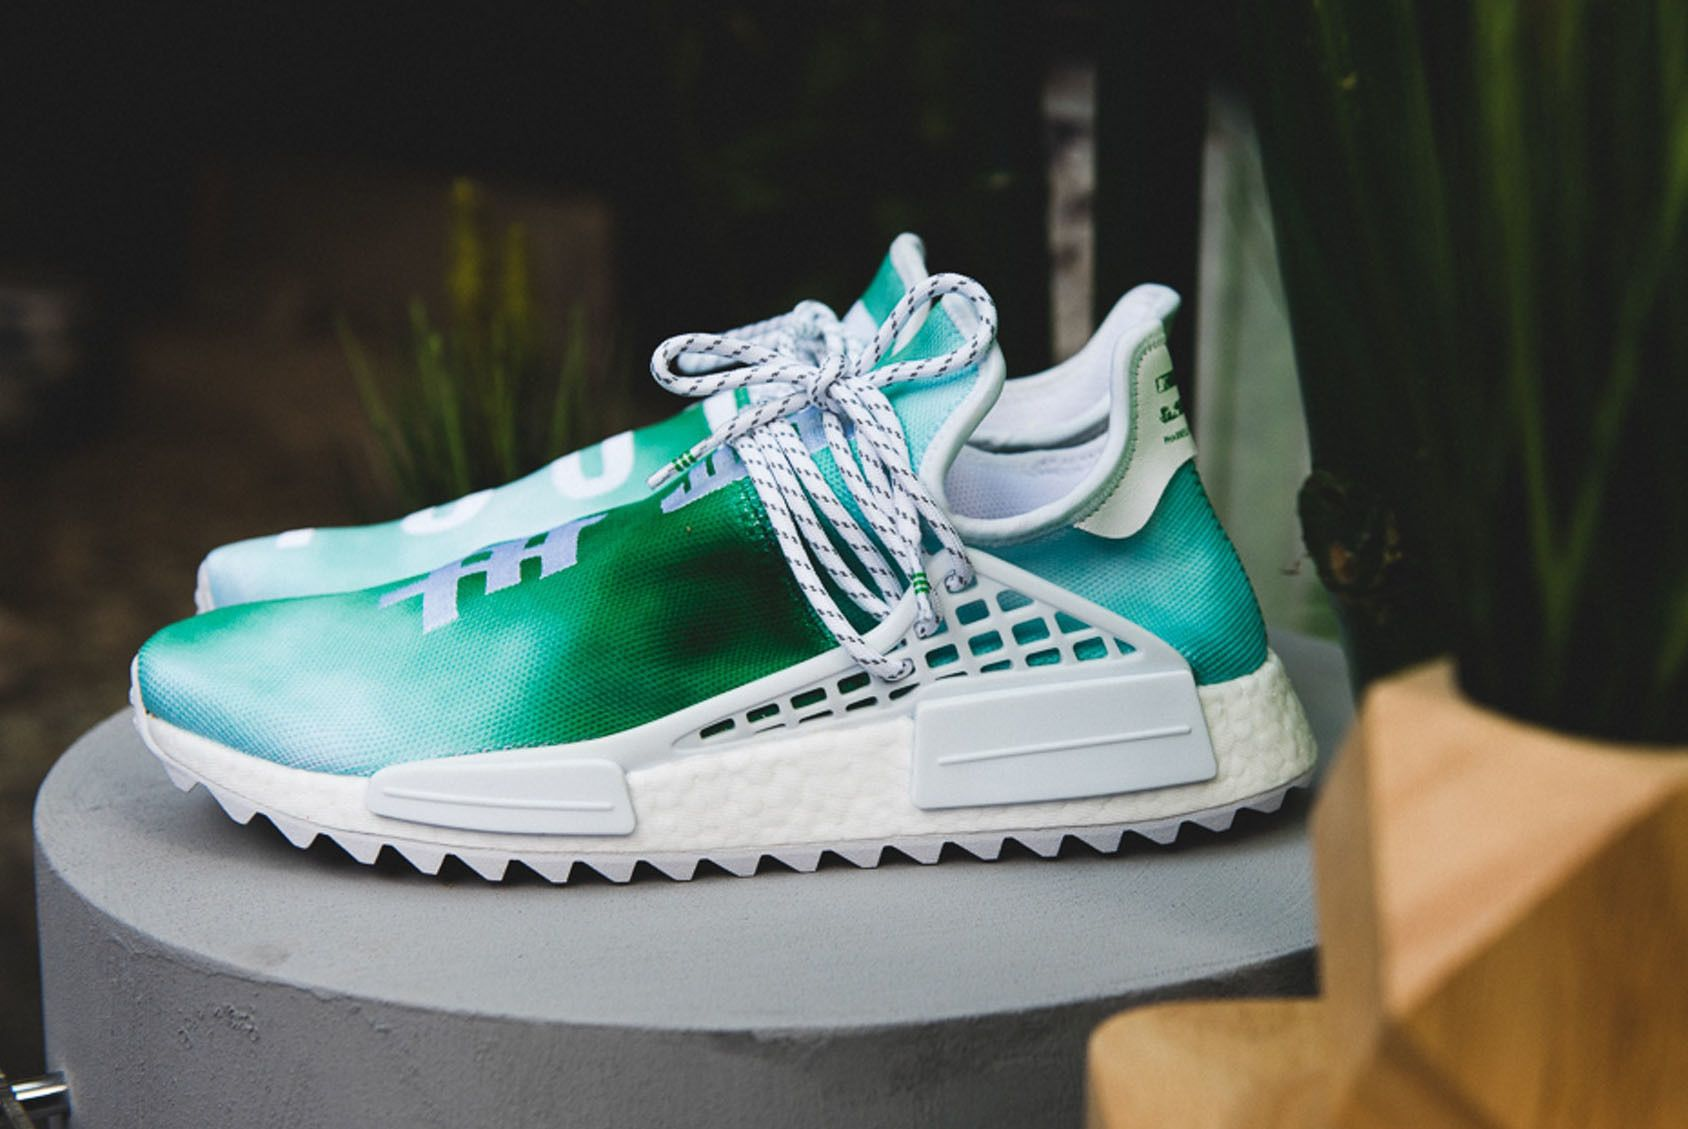 Pharrell Adidas Nmd Hu China Exclusive 6 Sneaker Freaker